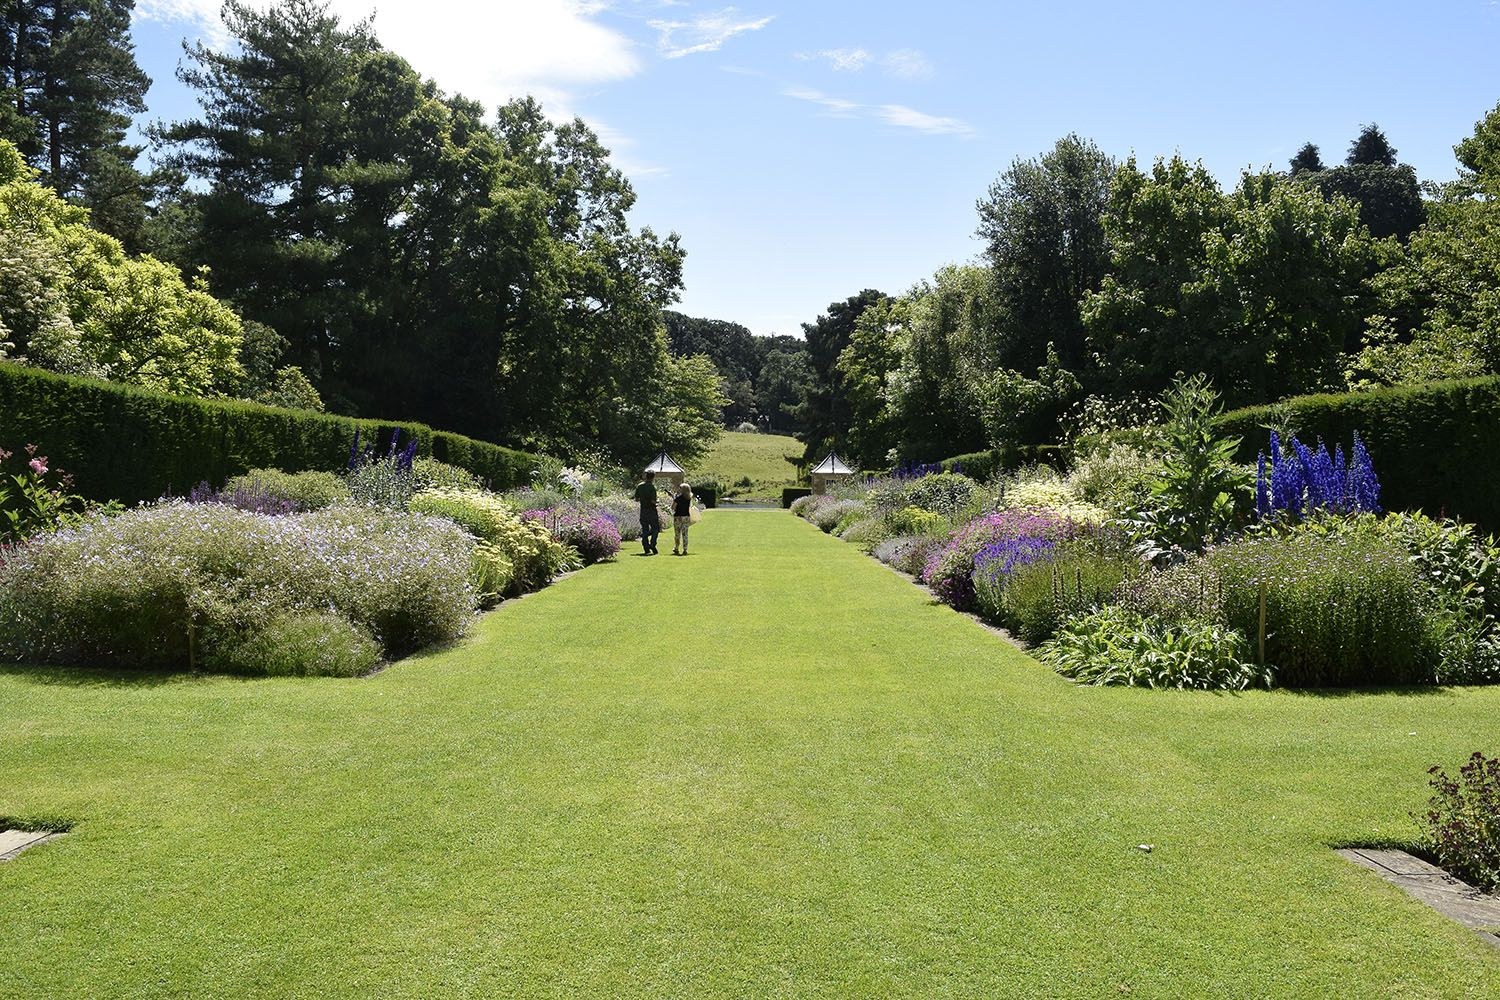 Newby Hall, where Peaky Blinders and Victoria was filmed, needs a new head gardener